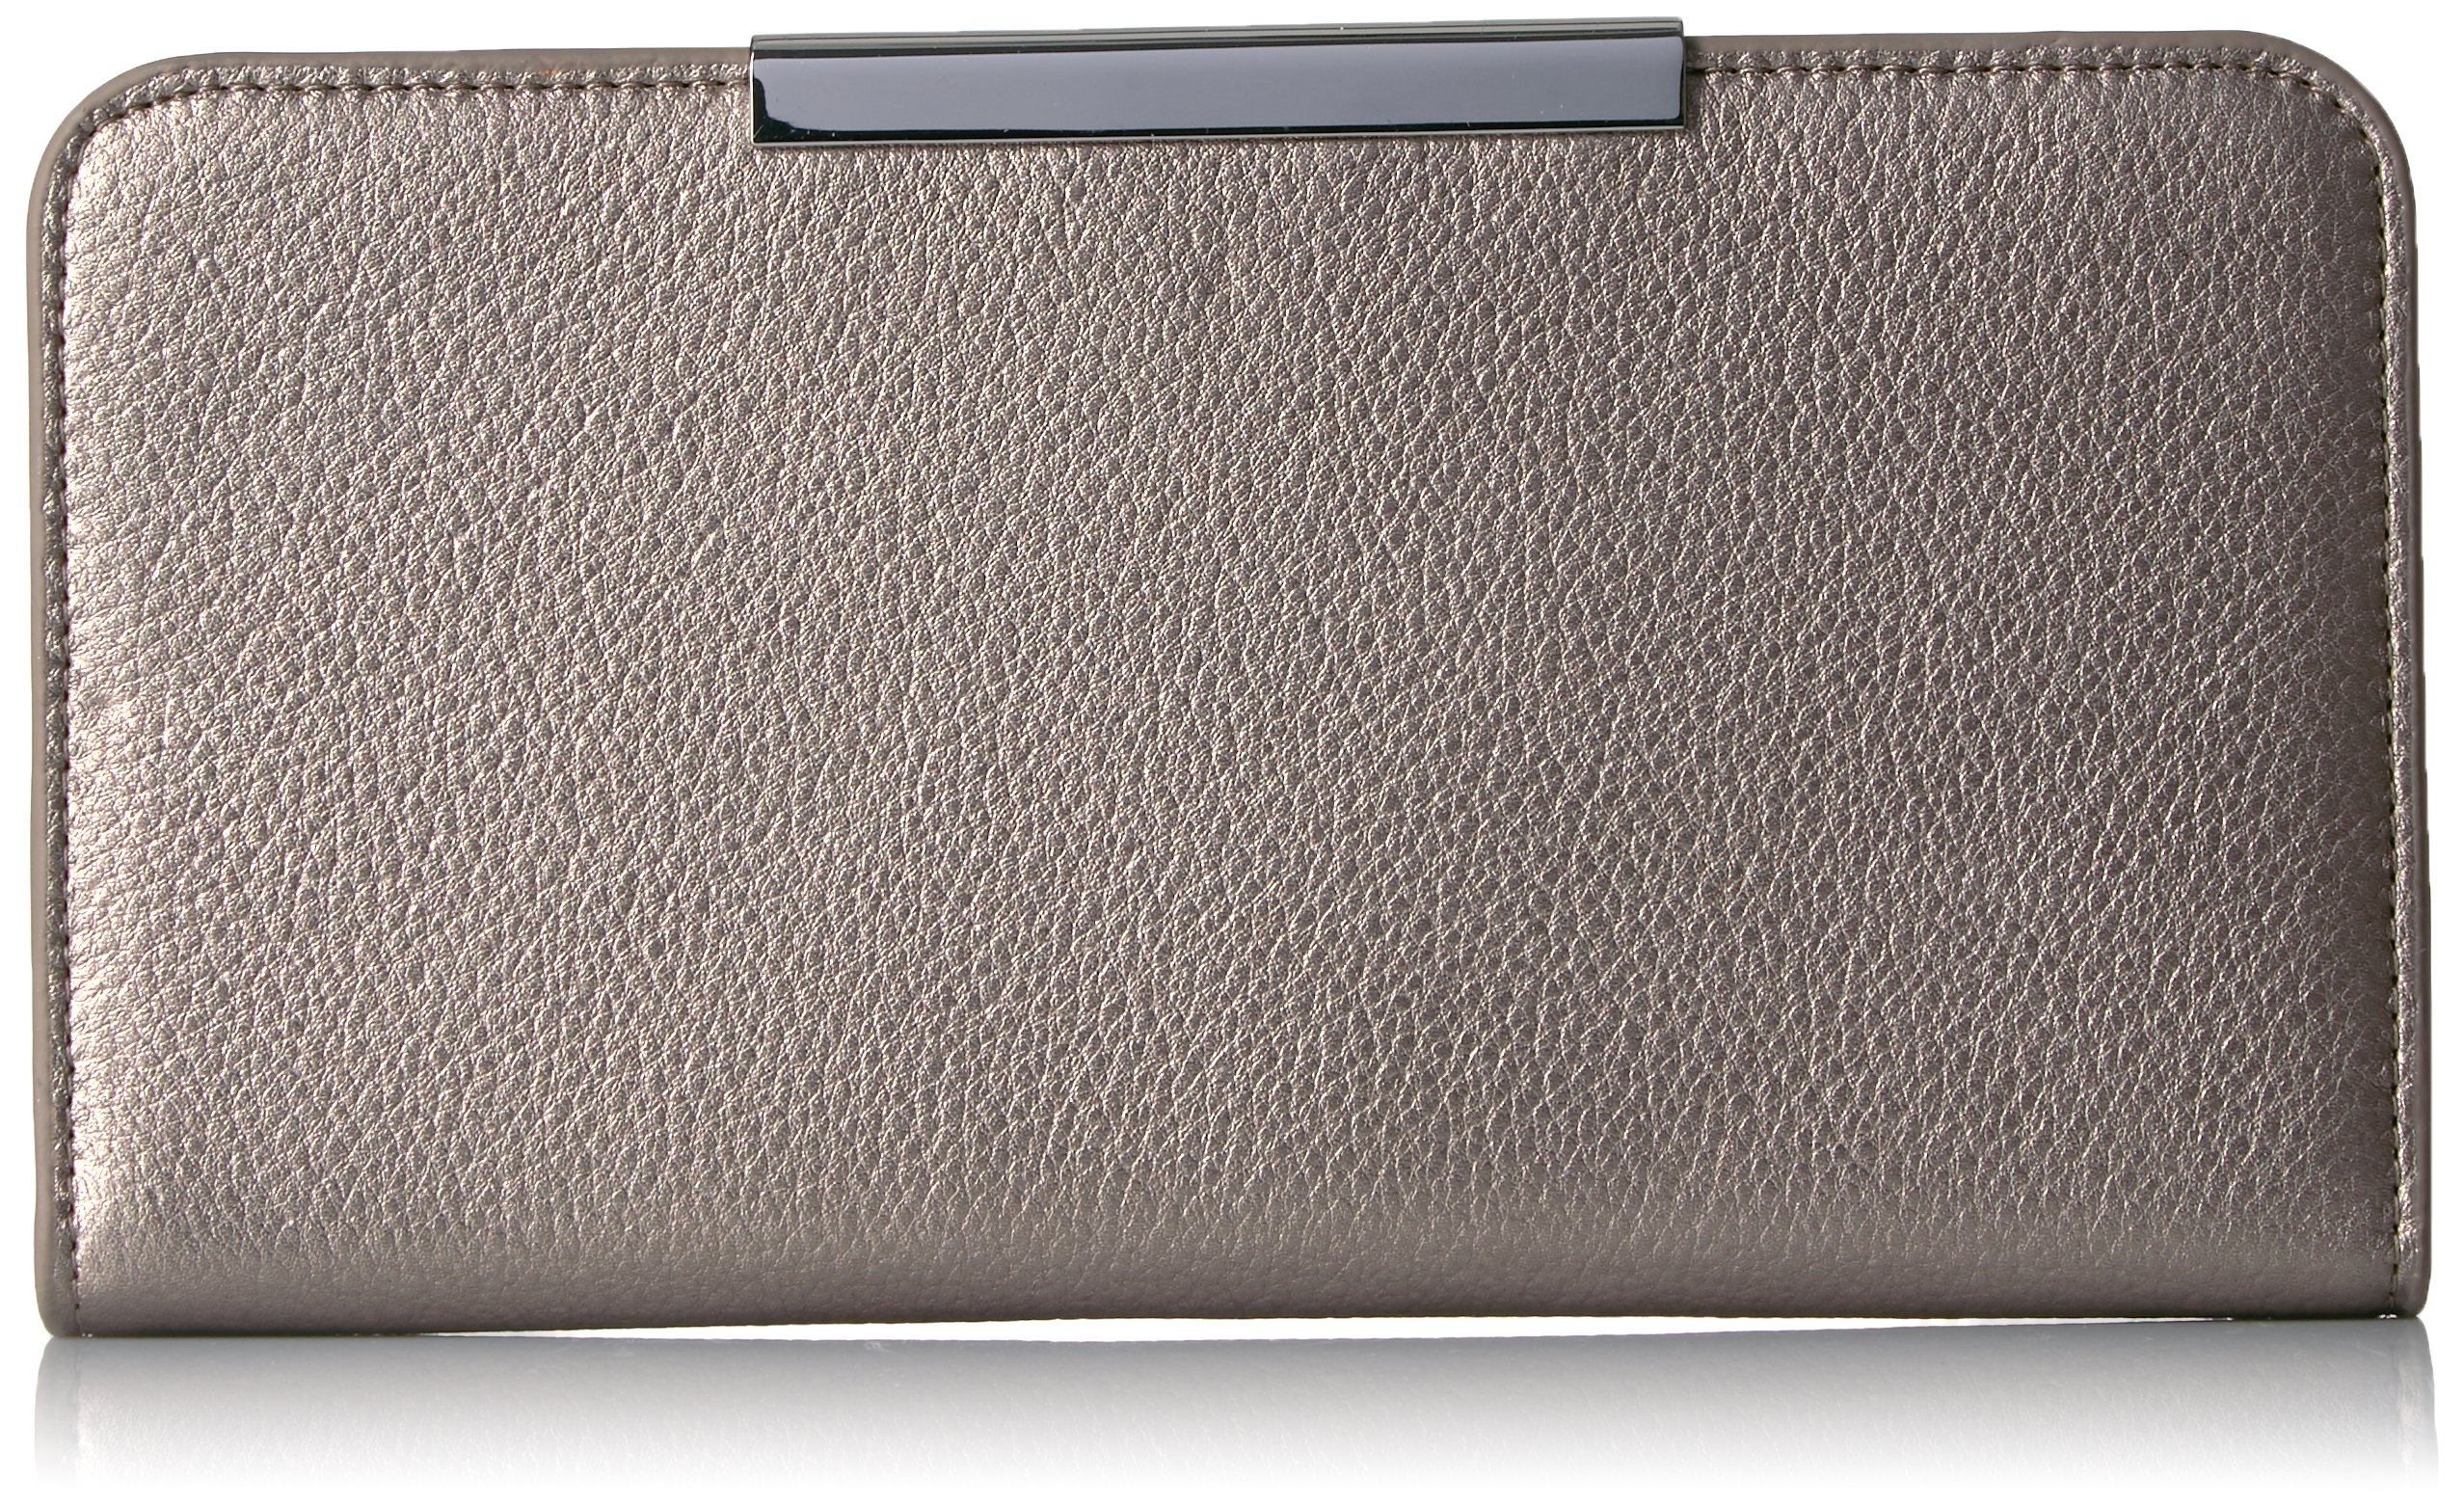 Vince Camuto Tina Wallet, Bronze by Vince Camuto